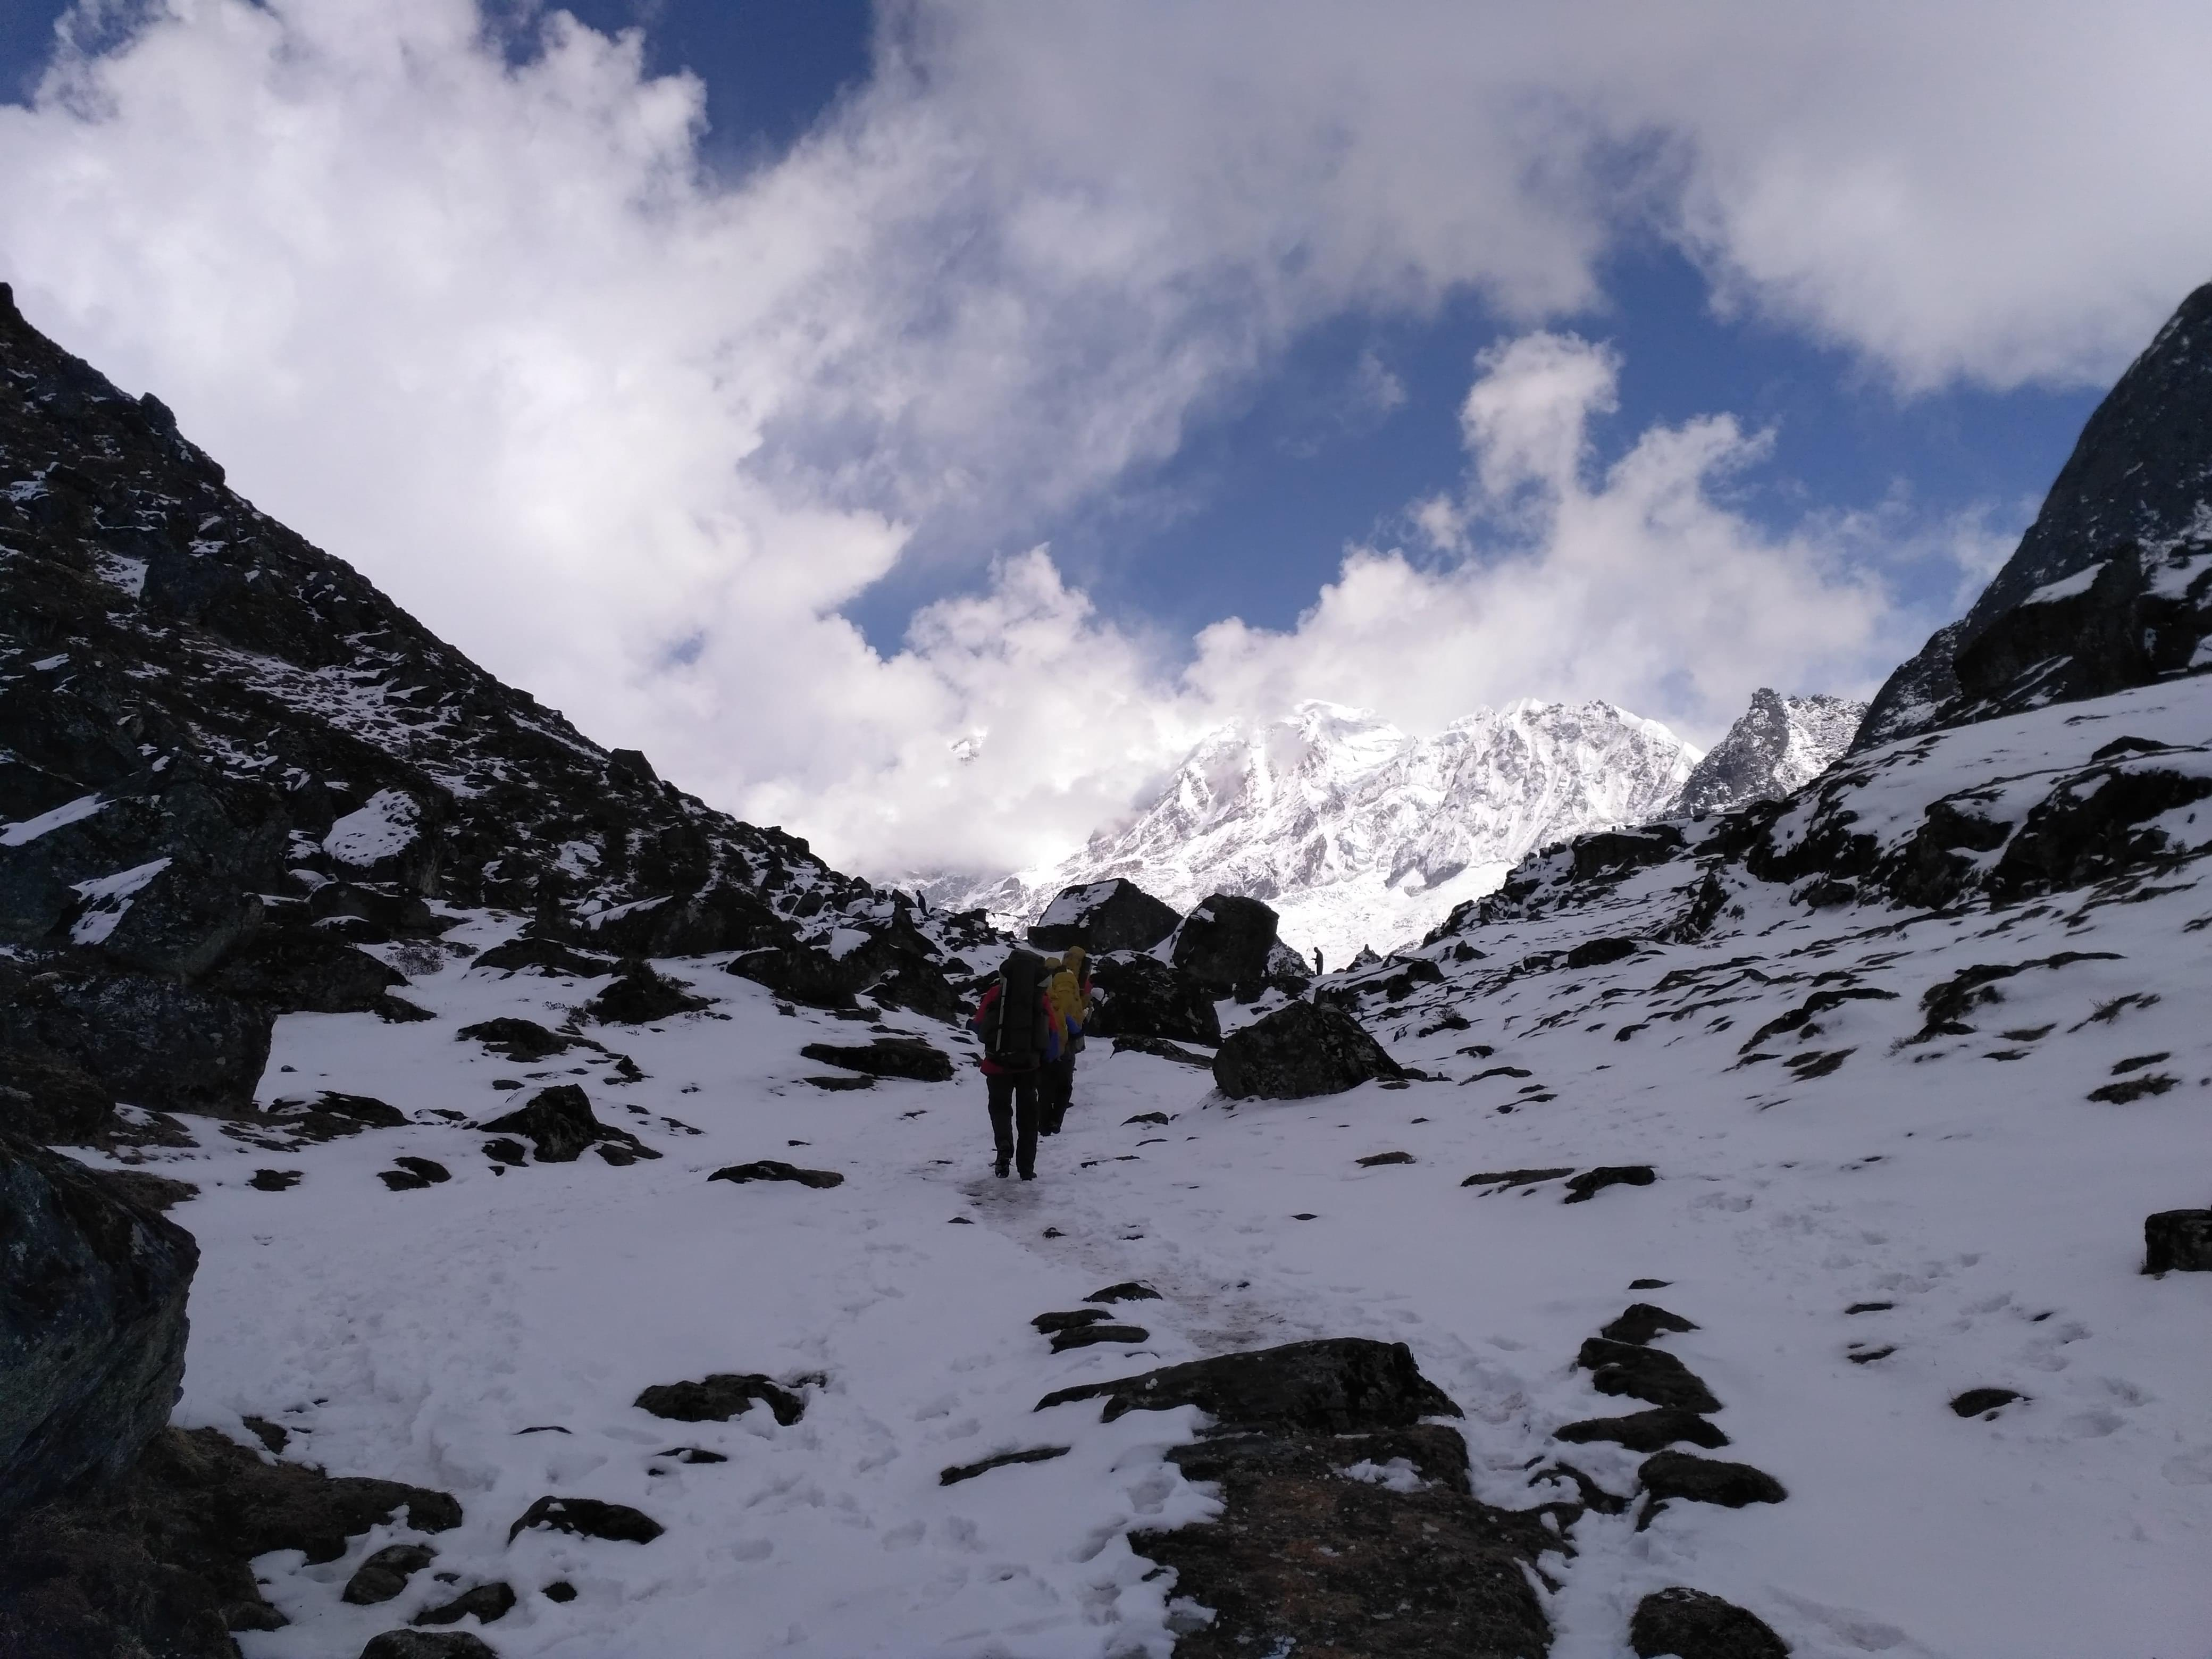 Mt.-Deo-Tibba-Expedition-JustWravel-1597385649-3.jpg